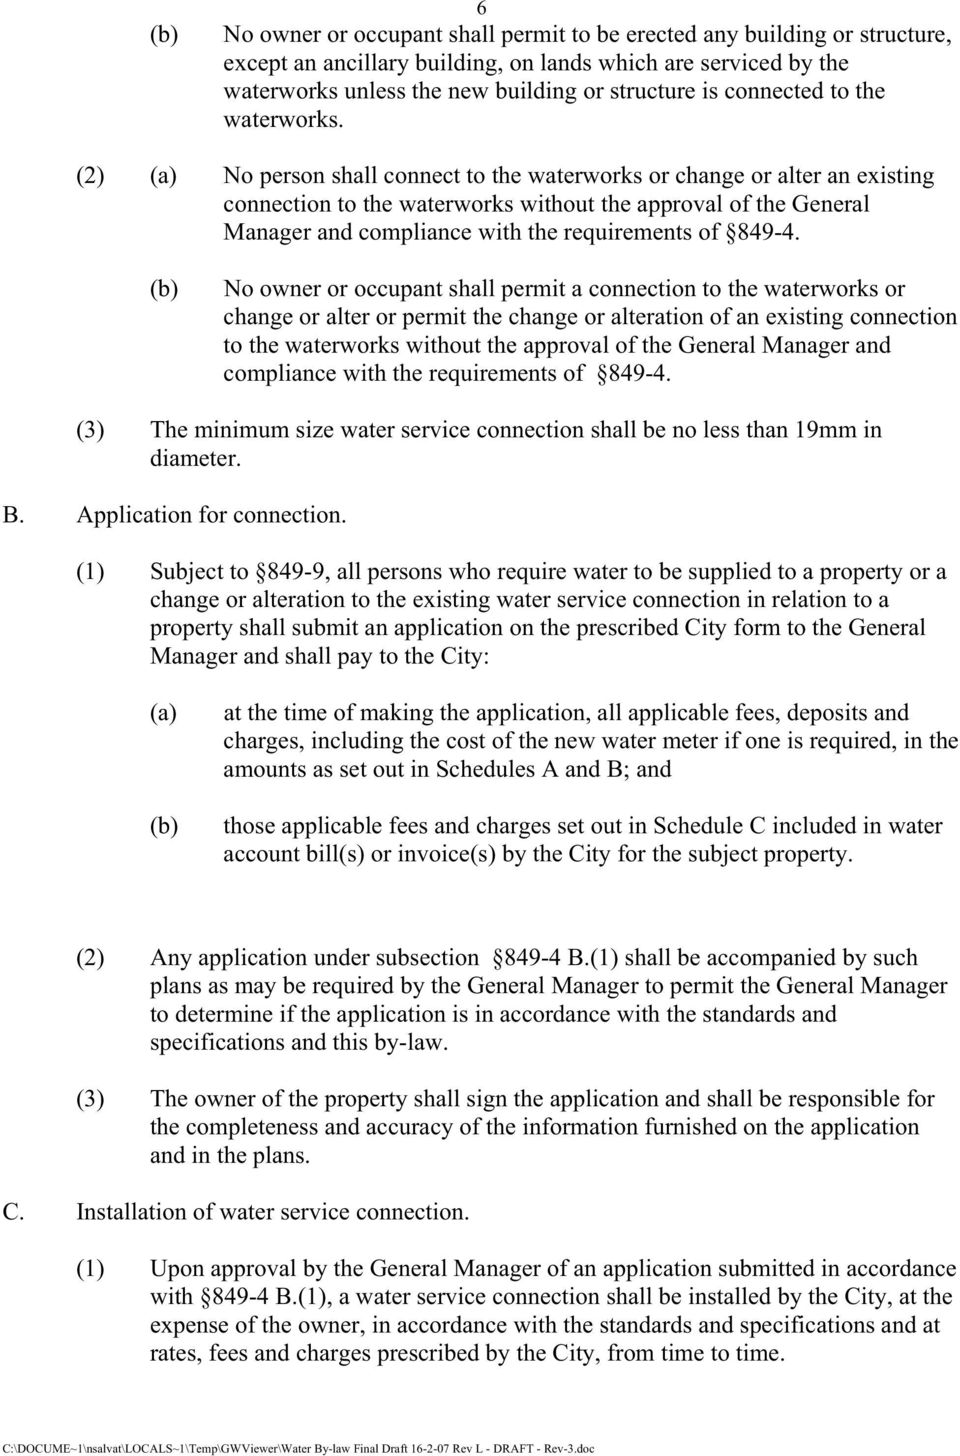 (2) (a) No person shall connect to the waterworks or change or alter an existing connection to the waterworks without the approval of the General Manager and compliance with the requirements of 849-4.